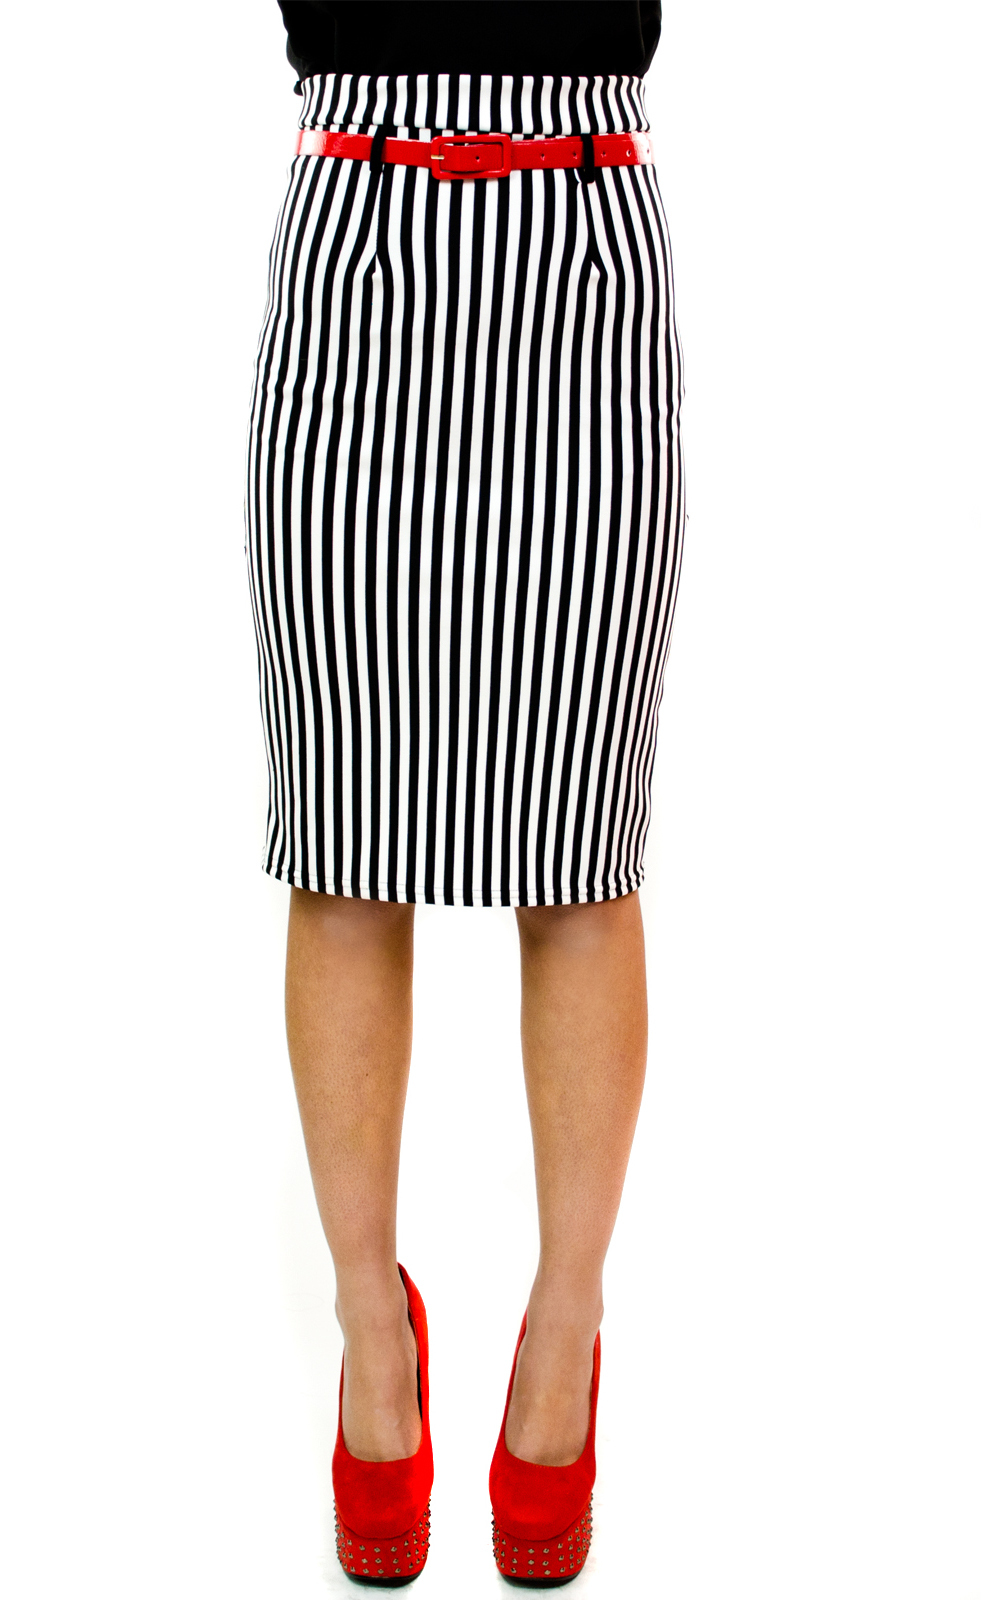 buy cheap pencil skirt compare s dresses